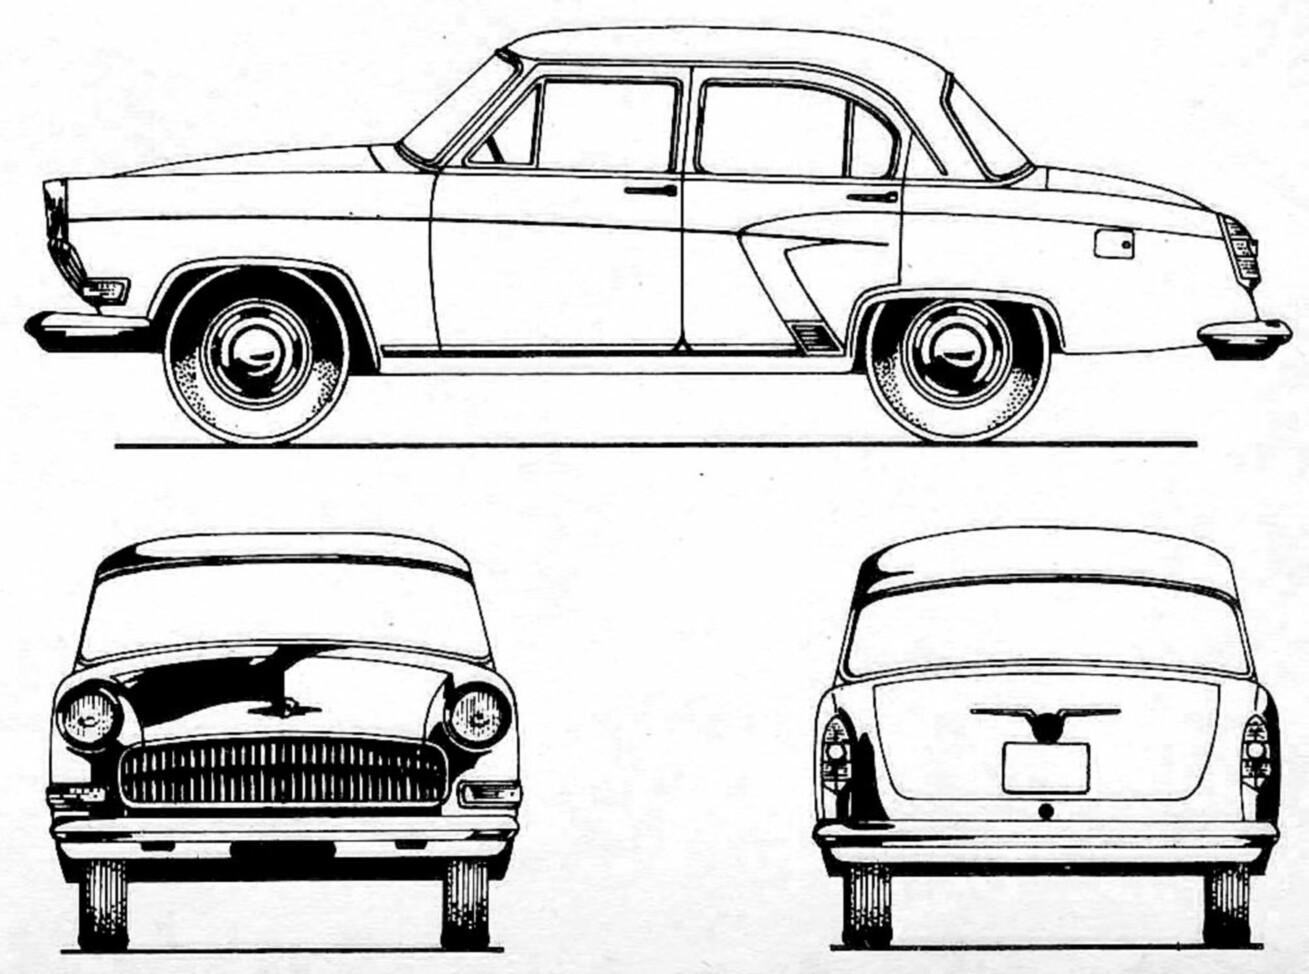 GAZ-21 blueprint